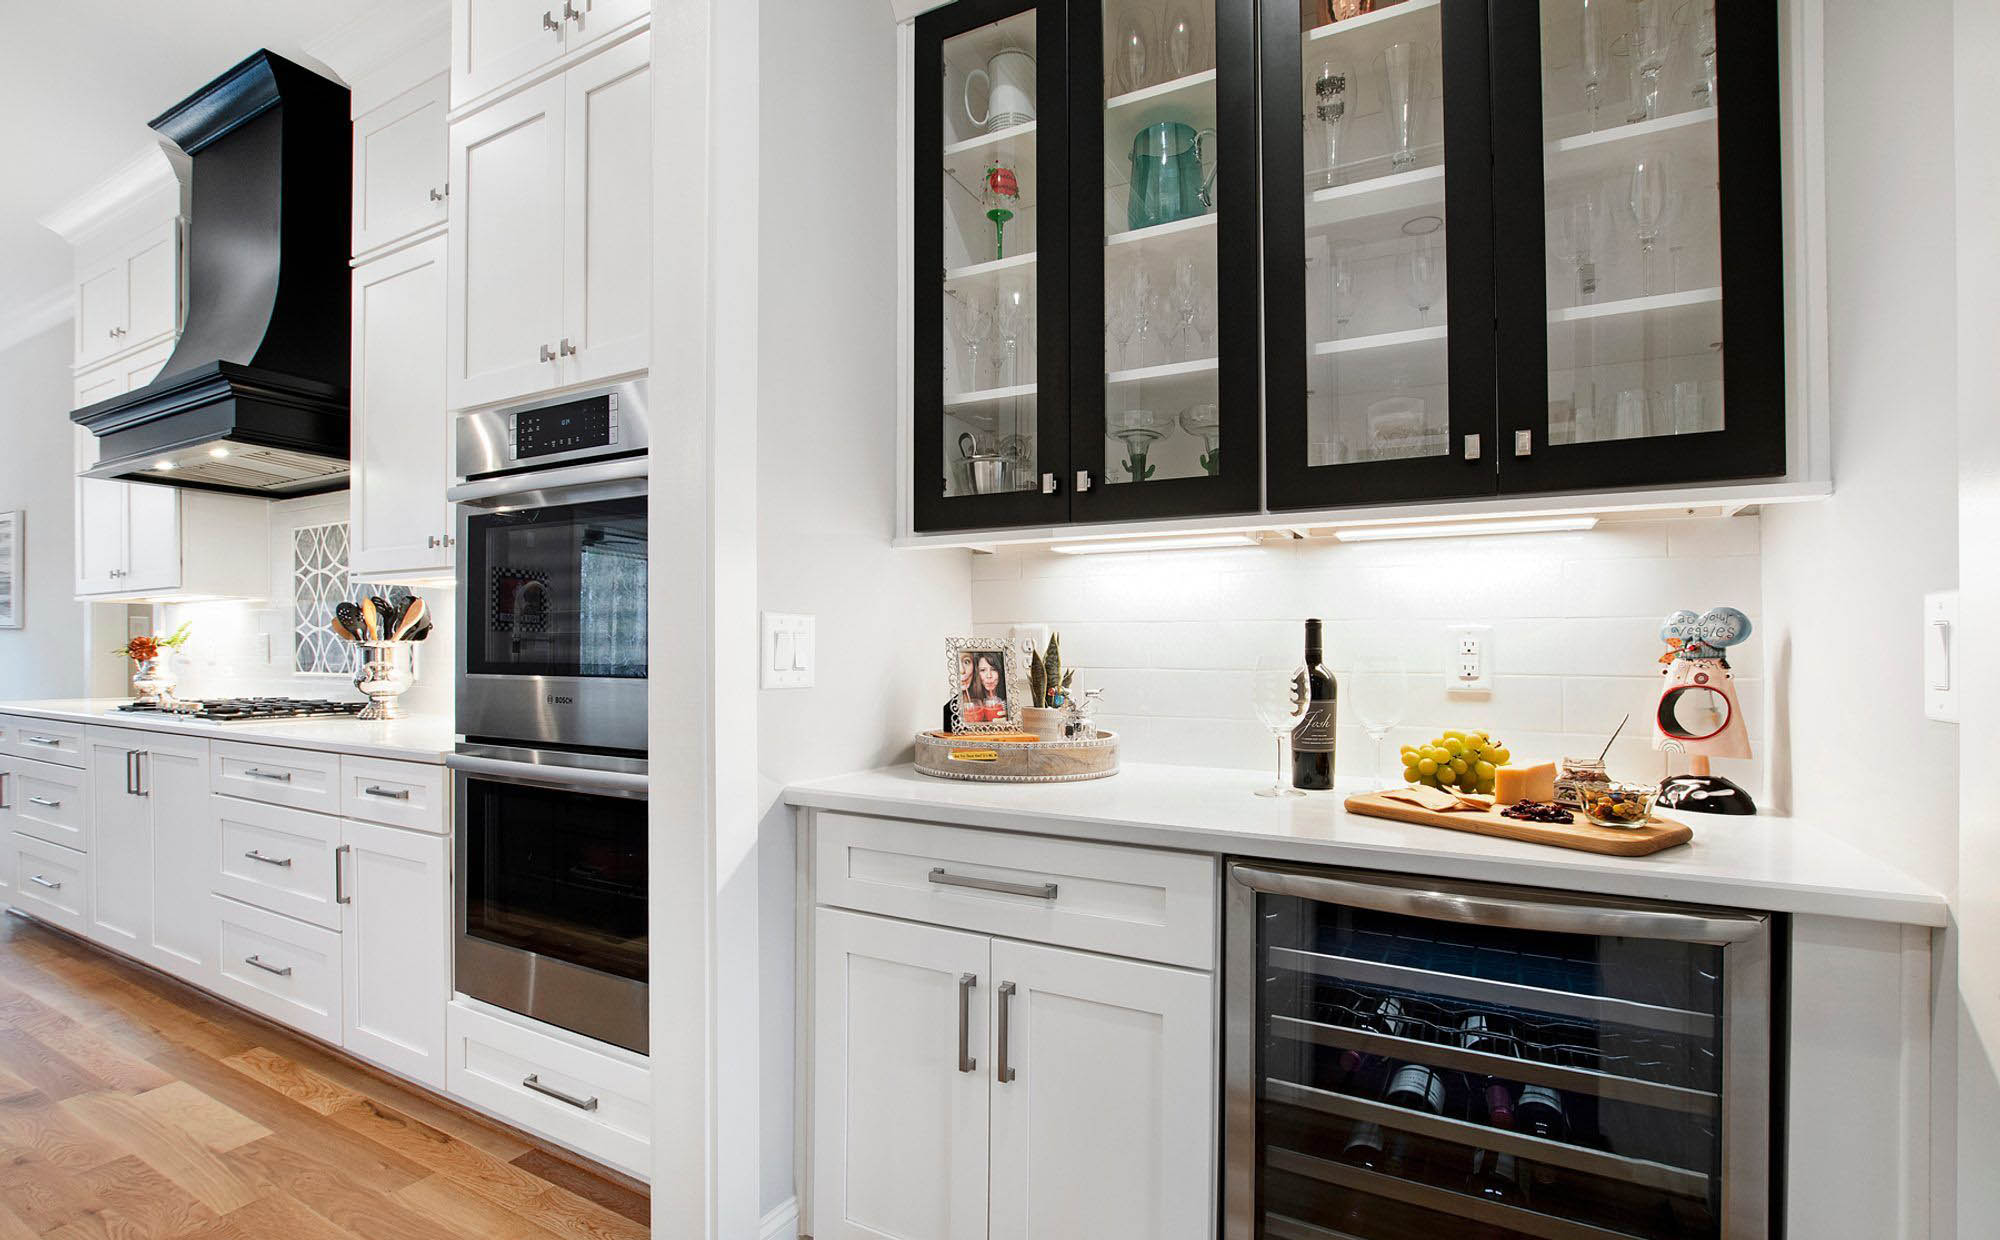 White and black kitchen color scheme with white quartz counters. A mix of white and black cabinets with brushed metal hardware. quartz vs granite.